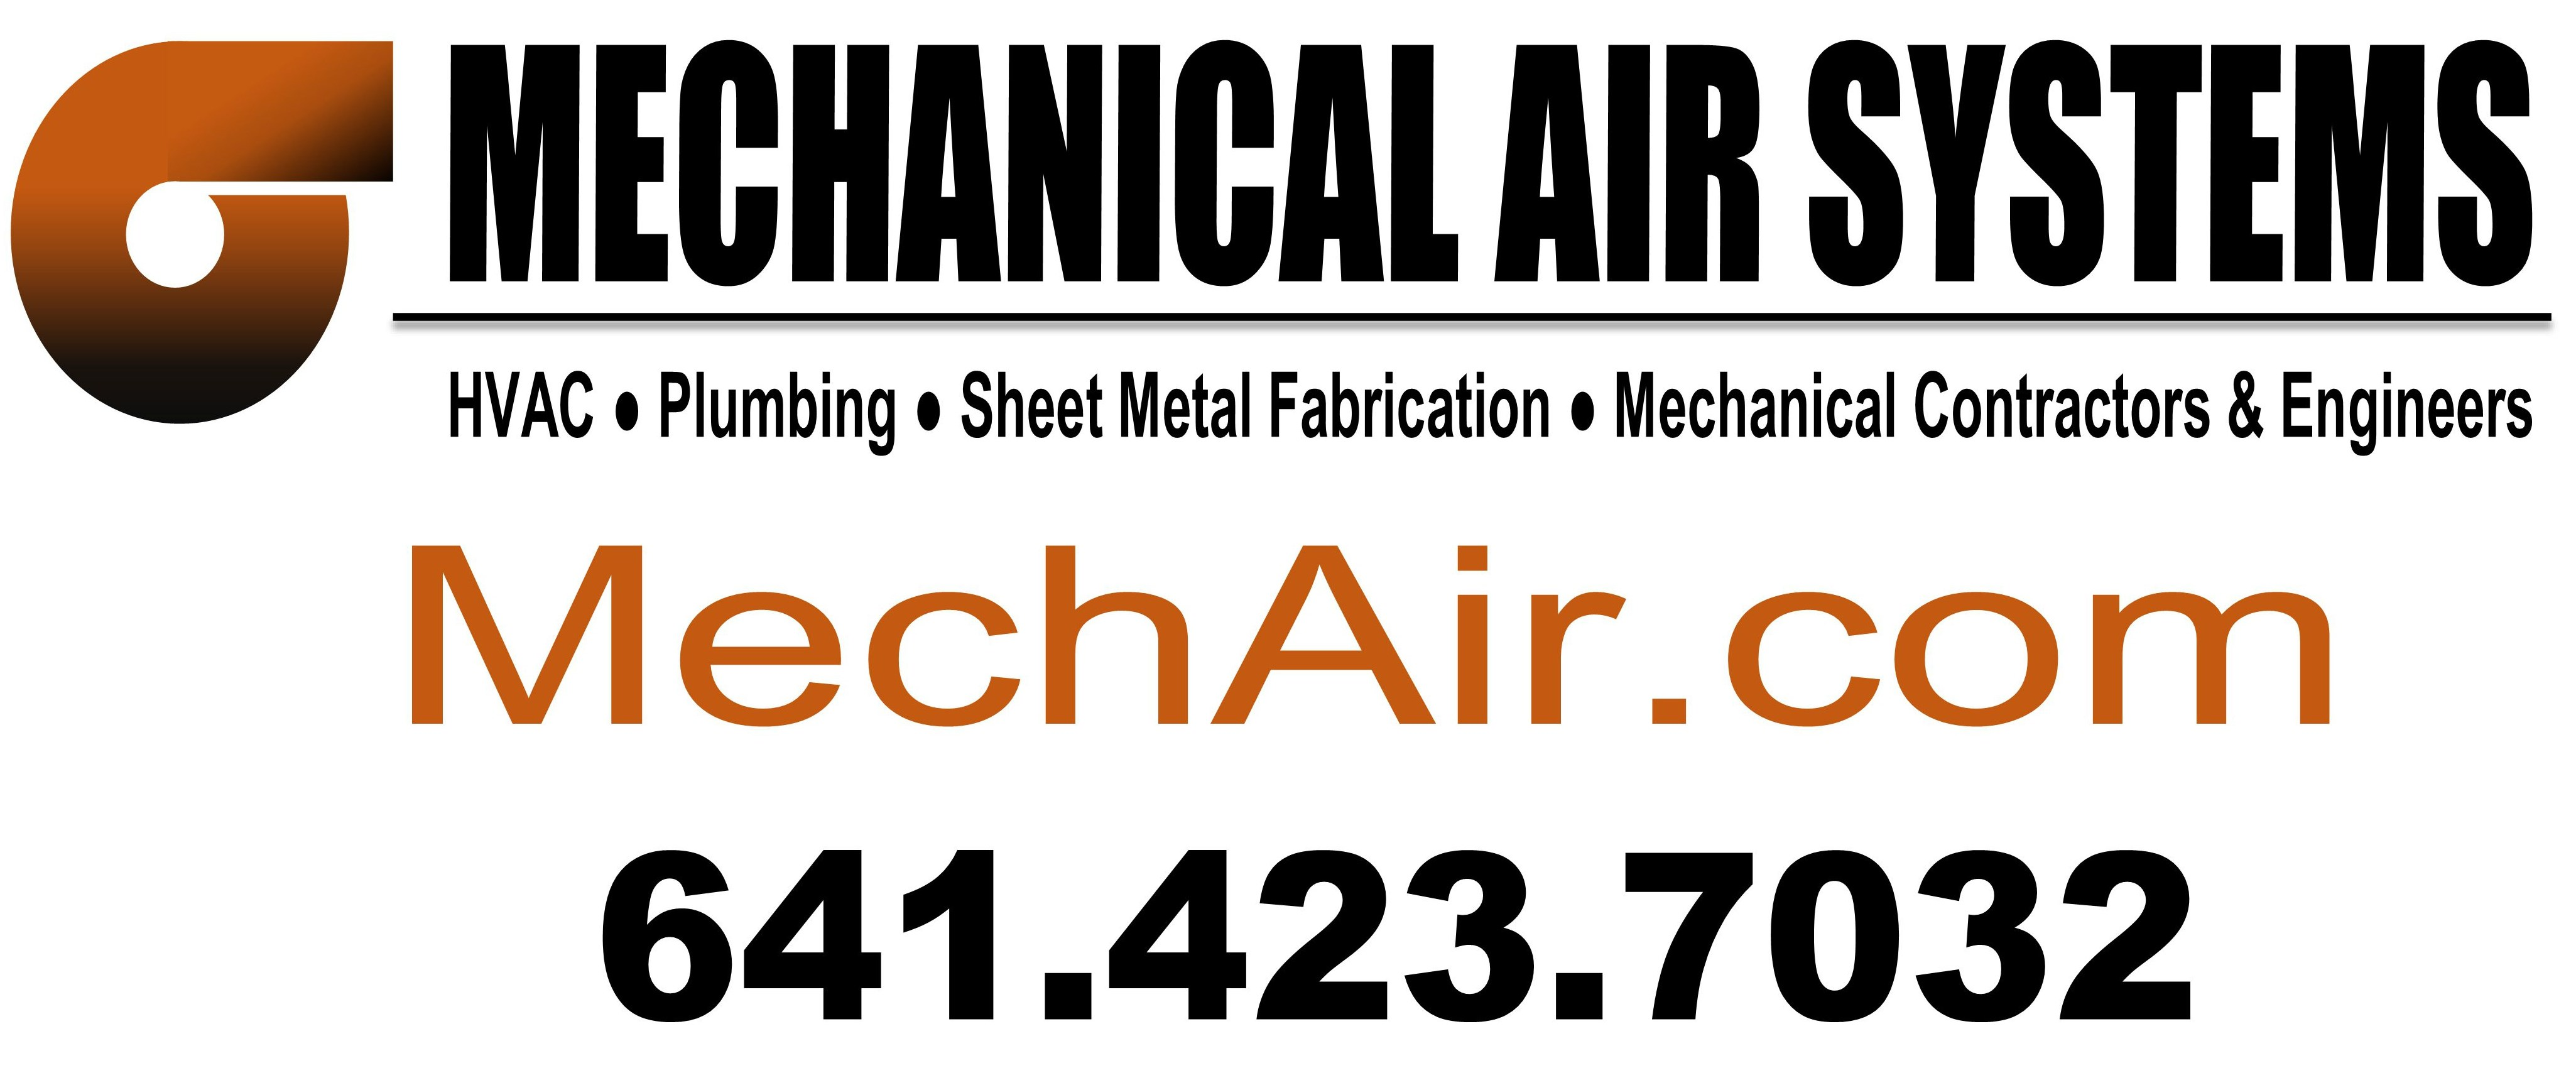 Mechanical Air Systems Co